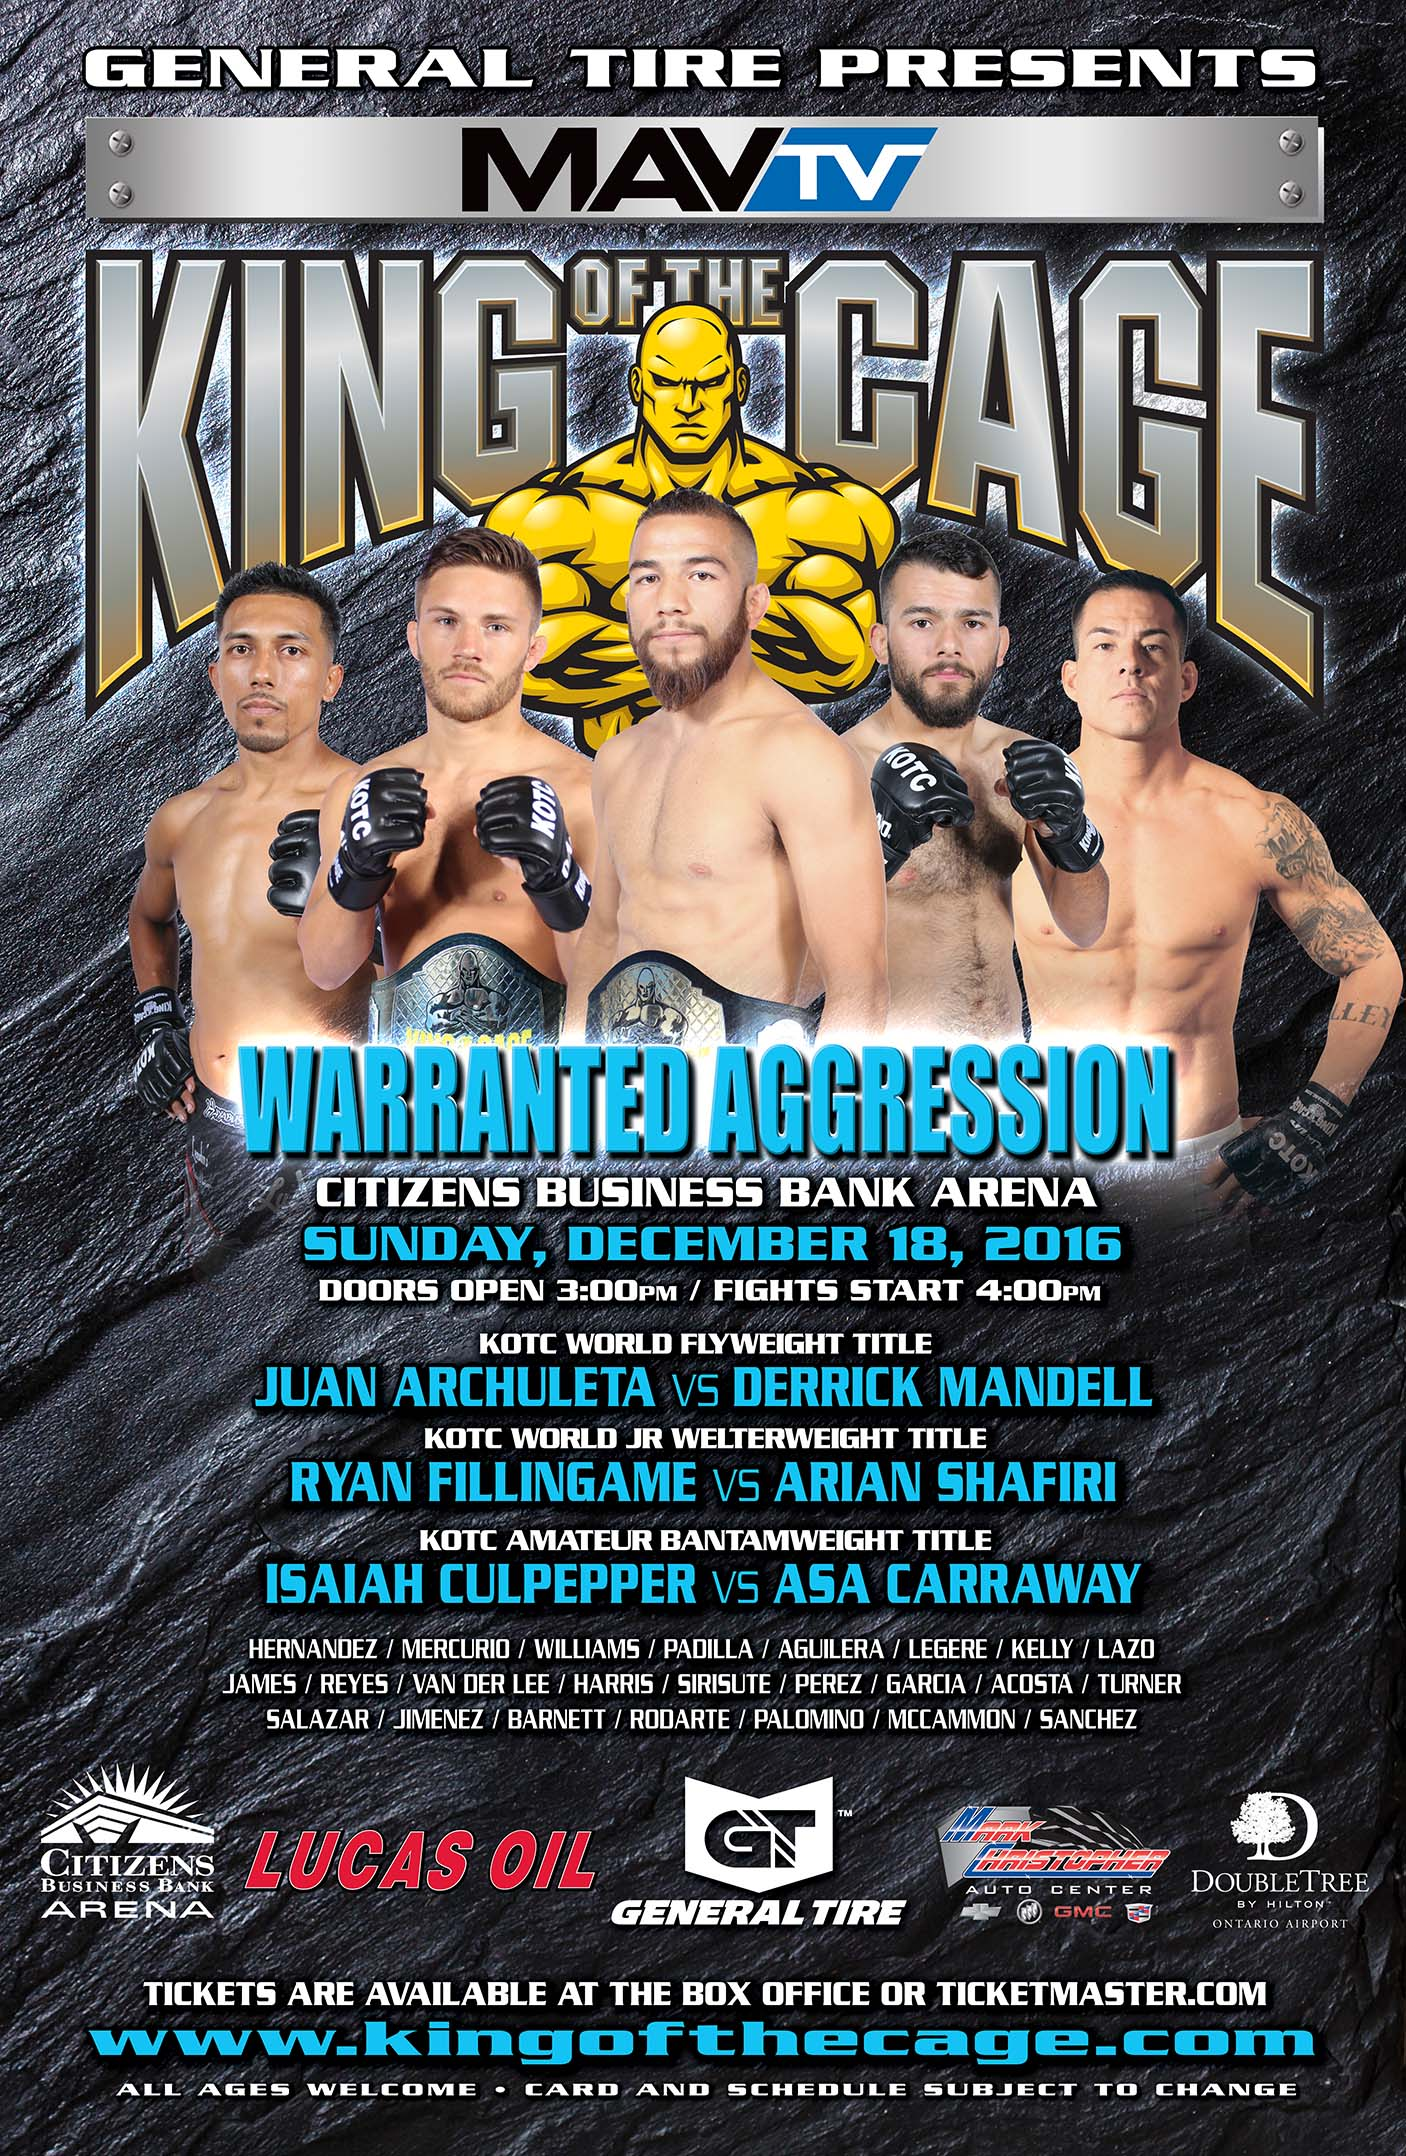 king of the cage returns to citizens business bank arena on